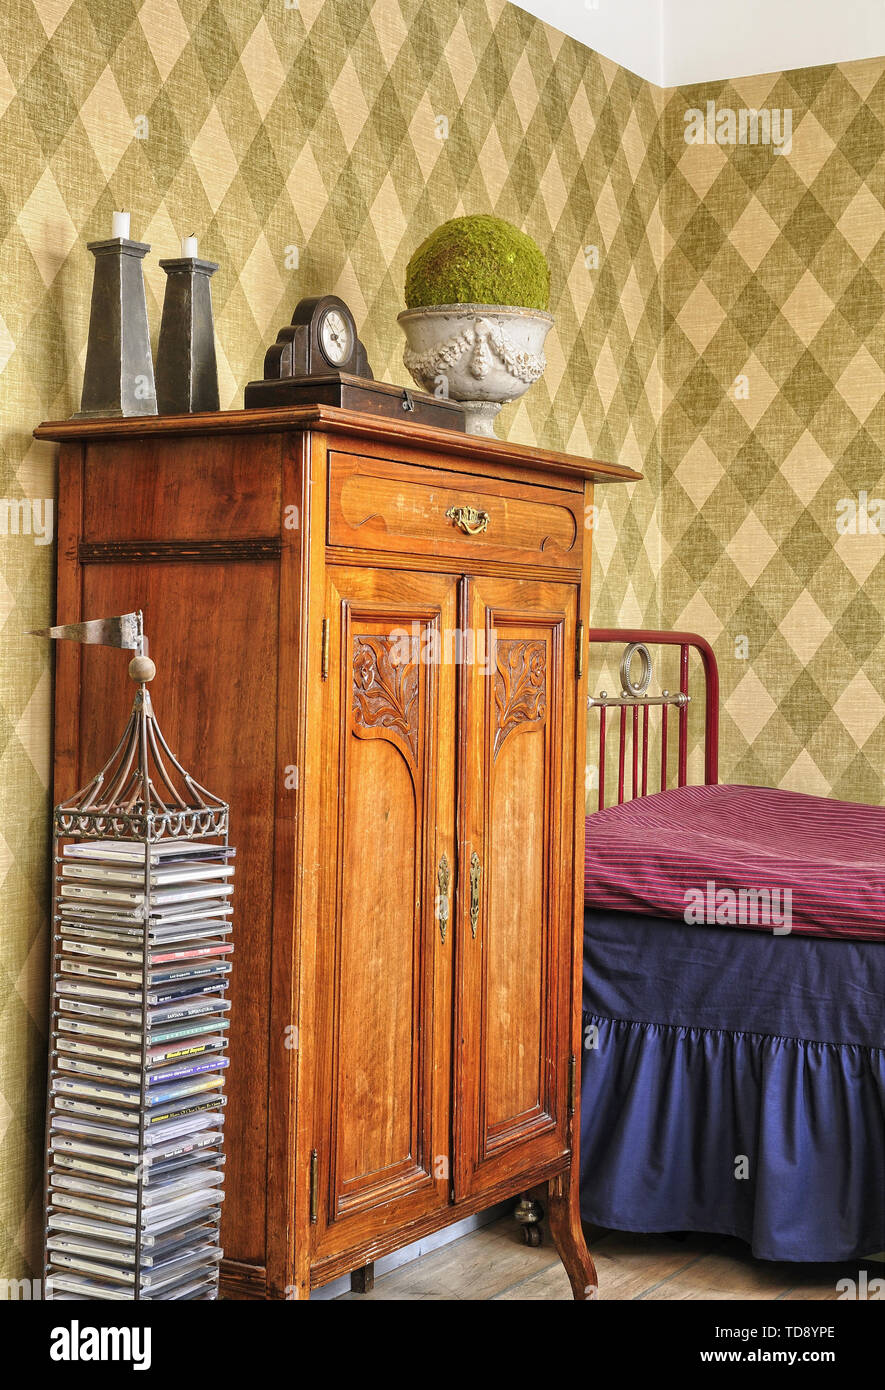 Antique cabinet on side of red metal bed in retro style teen boy bedroom    UK AND IRISH RIGHTS ONLY - Stock Image